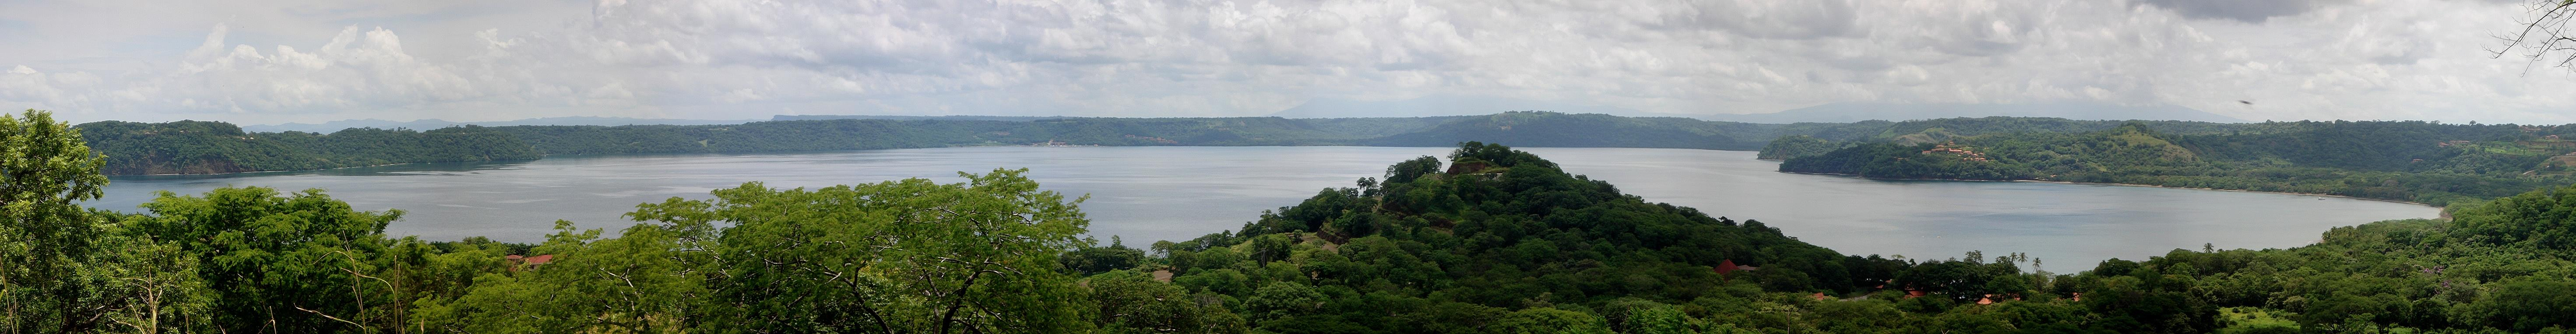 Hillside view of the Gulf of Papagayo Costa Rica